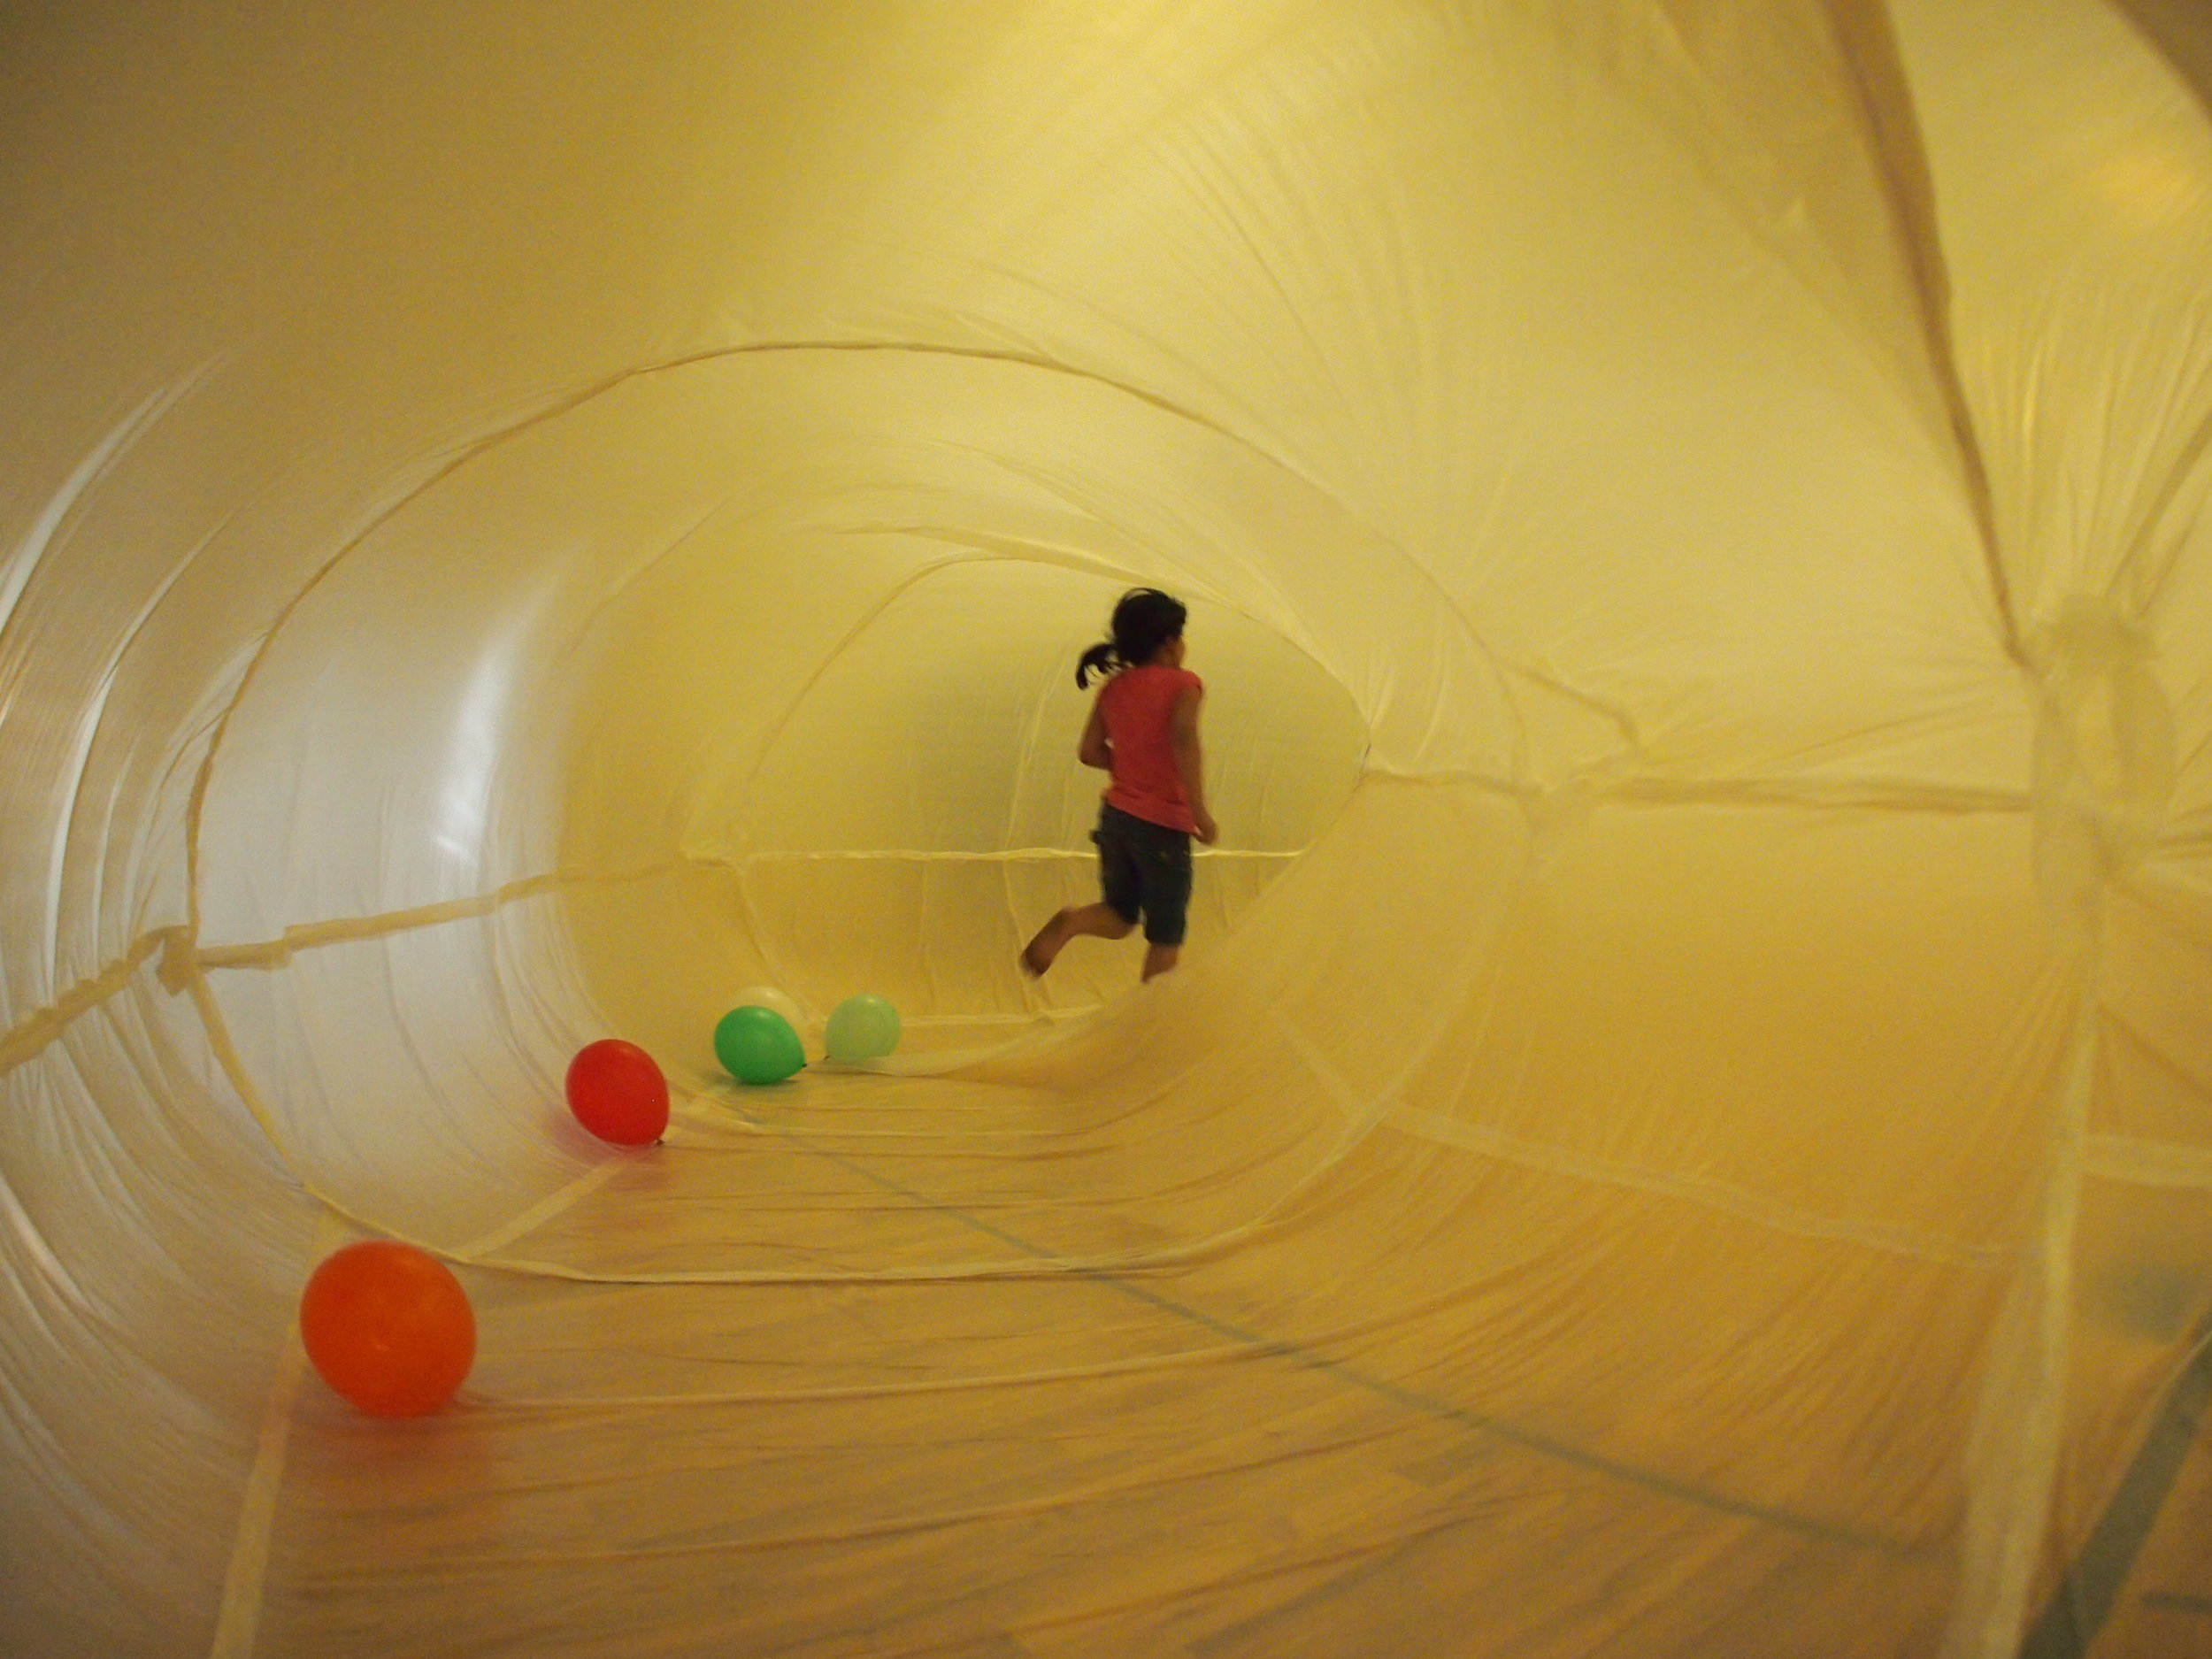 Inside an inflatable.